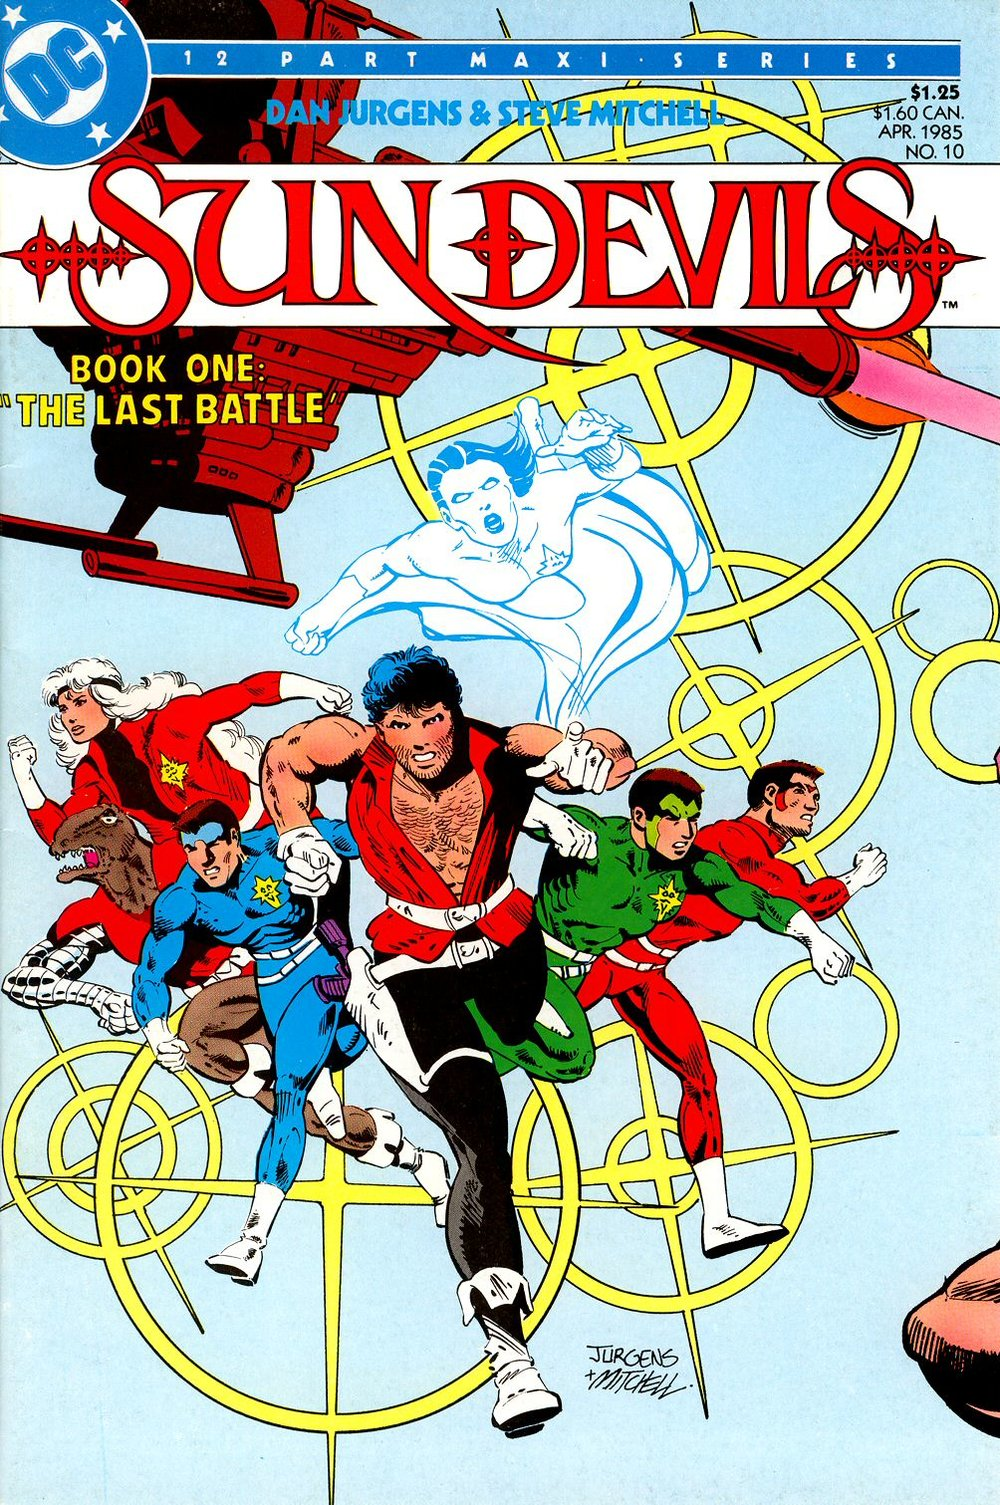 Sun Devils (1984) #10, cover penciled by Dan Jurgens & inked by Steve Mitchell.